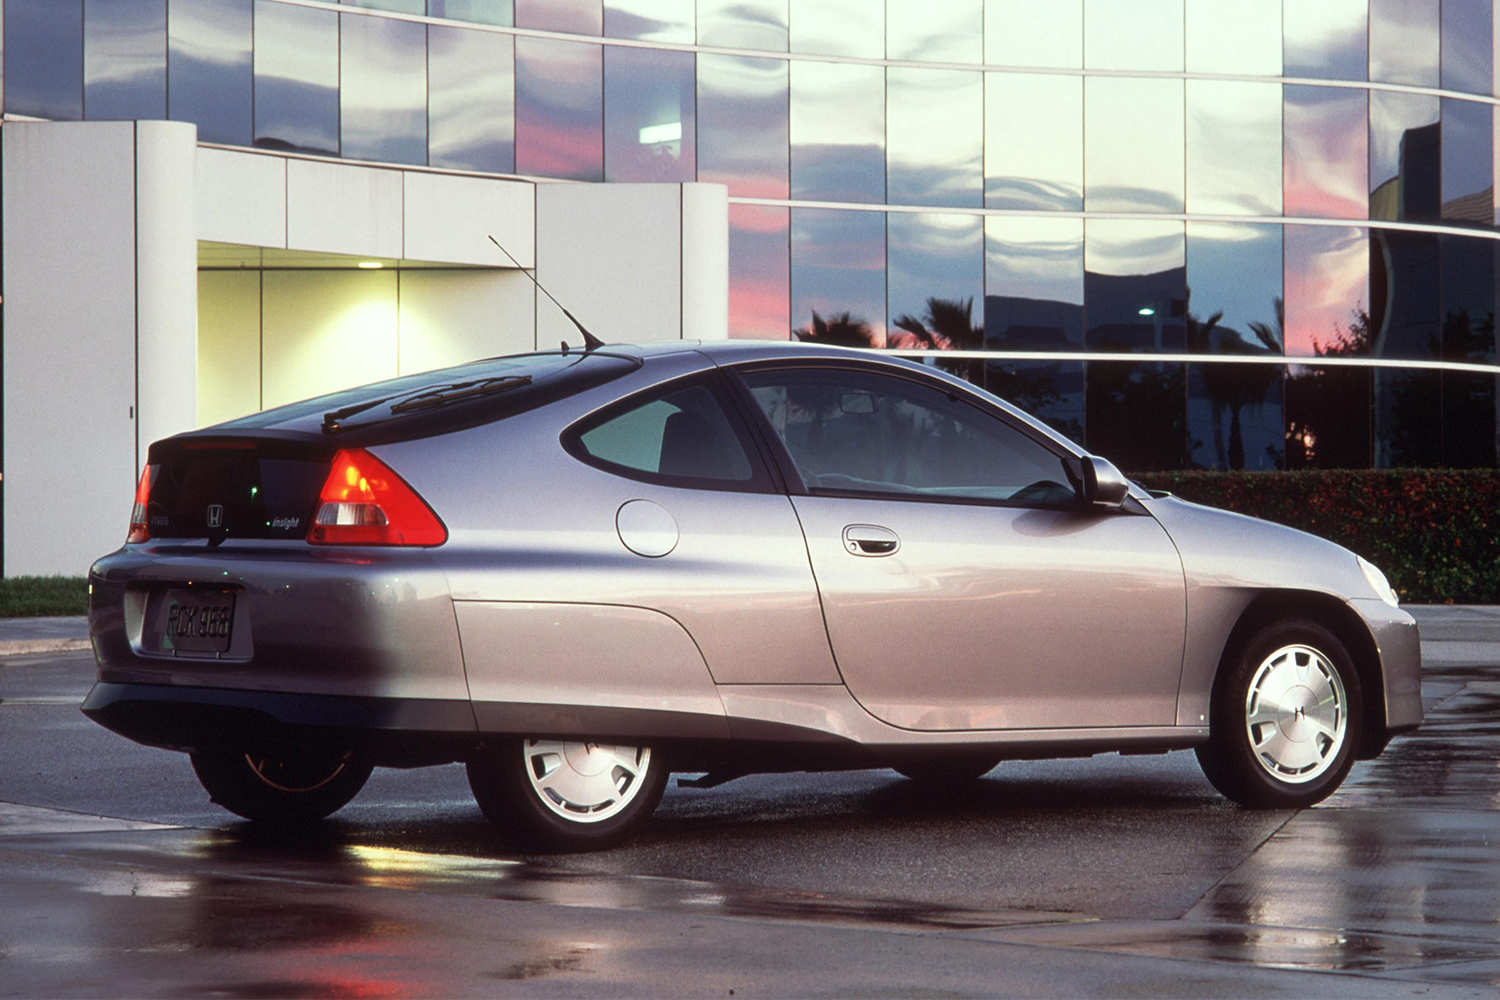 The back end of the 2000 Honda Insight hybrid in silver